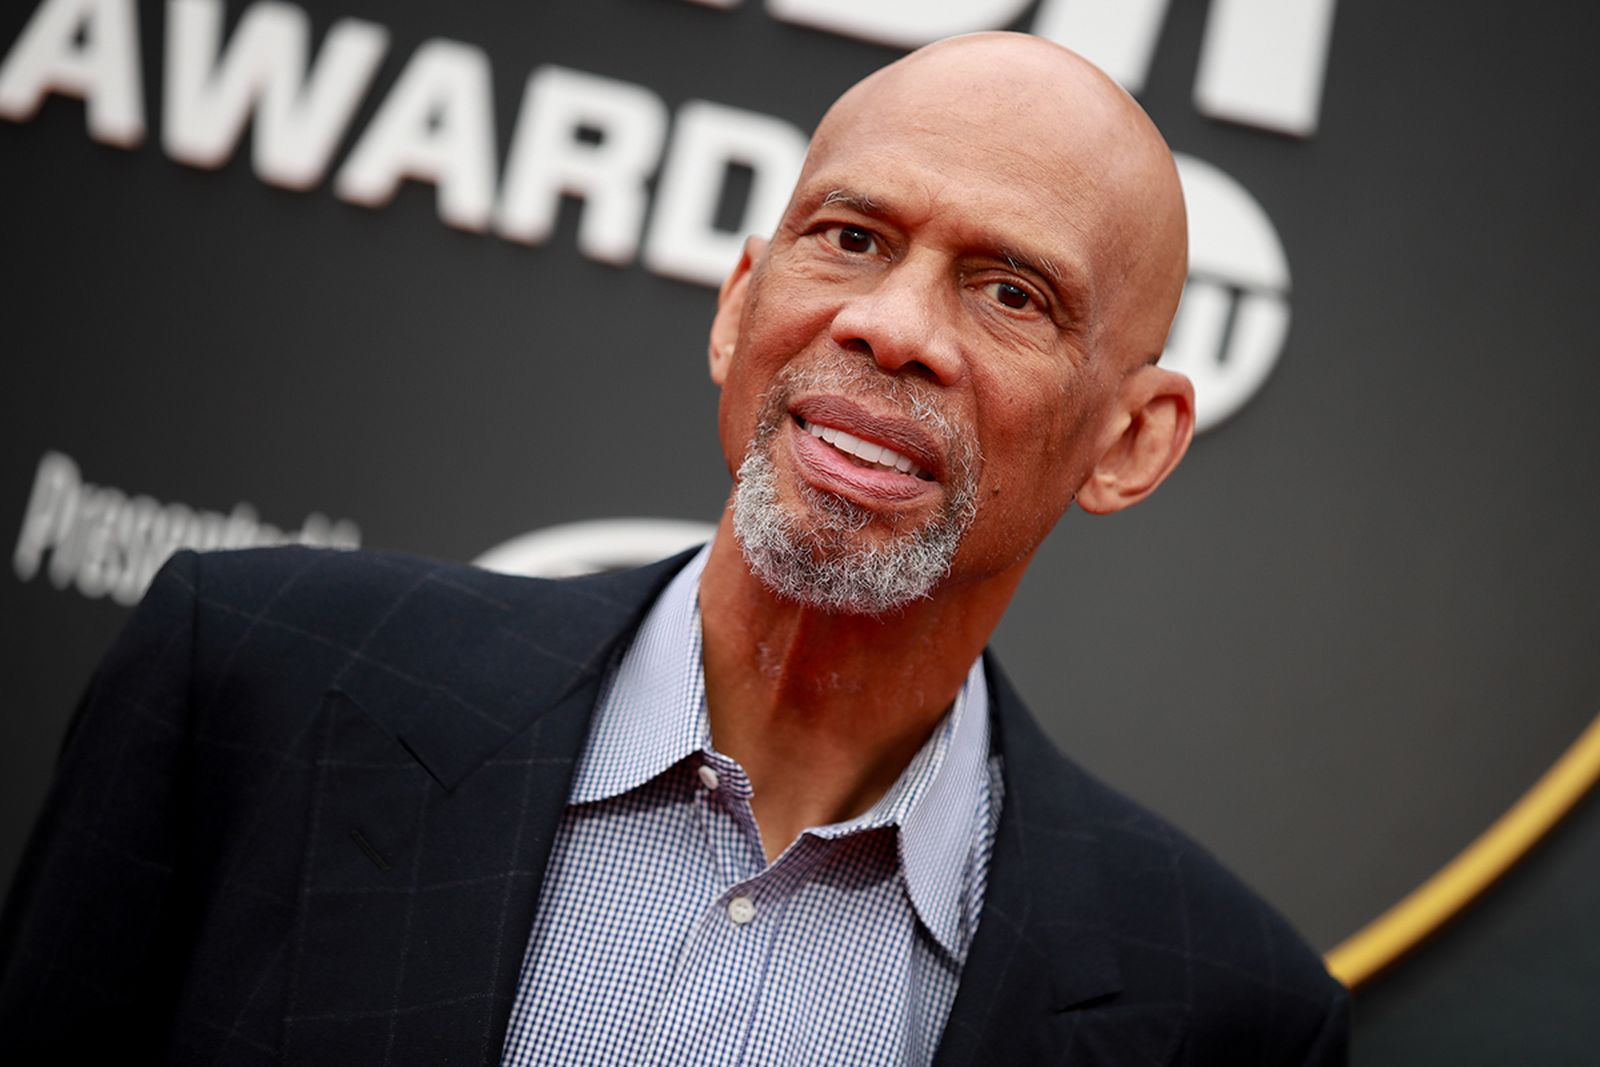 Kareem Abdul-Jabbar attends the 2019 NBA Awards at Barker Hangar